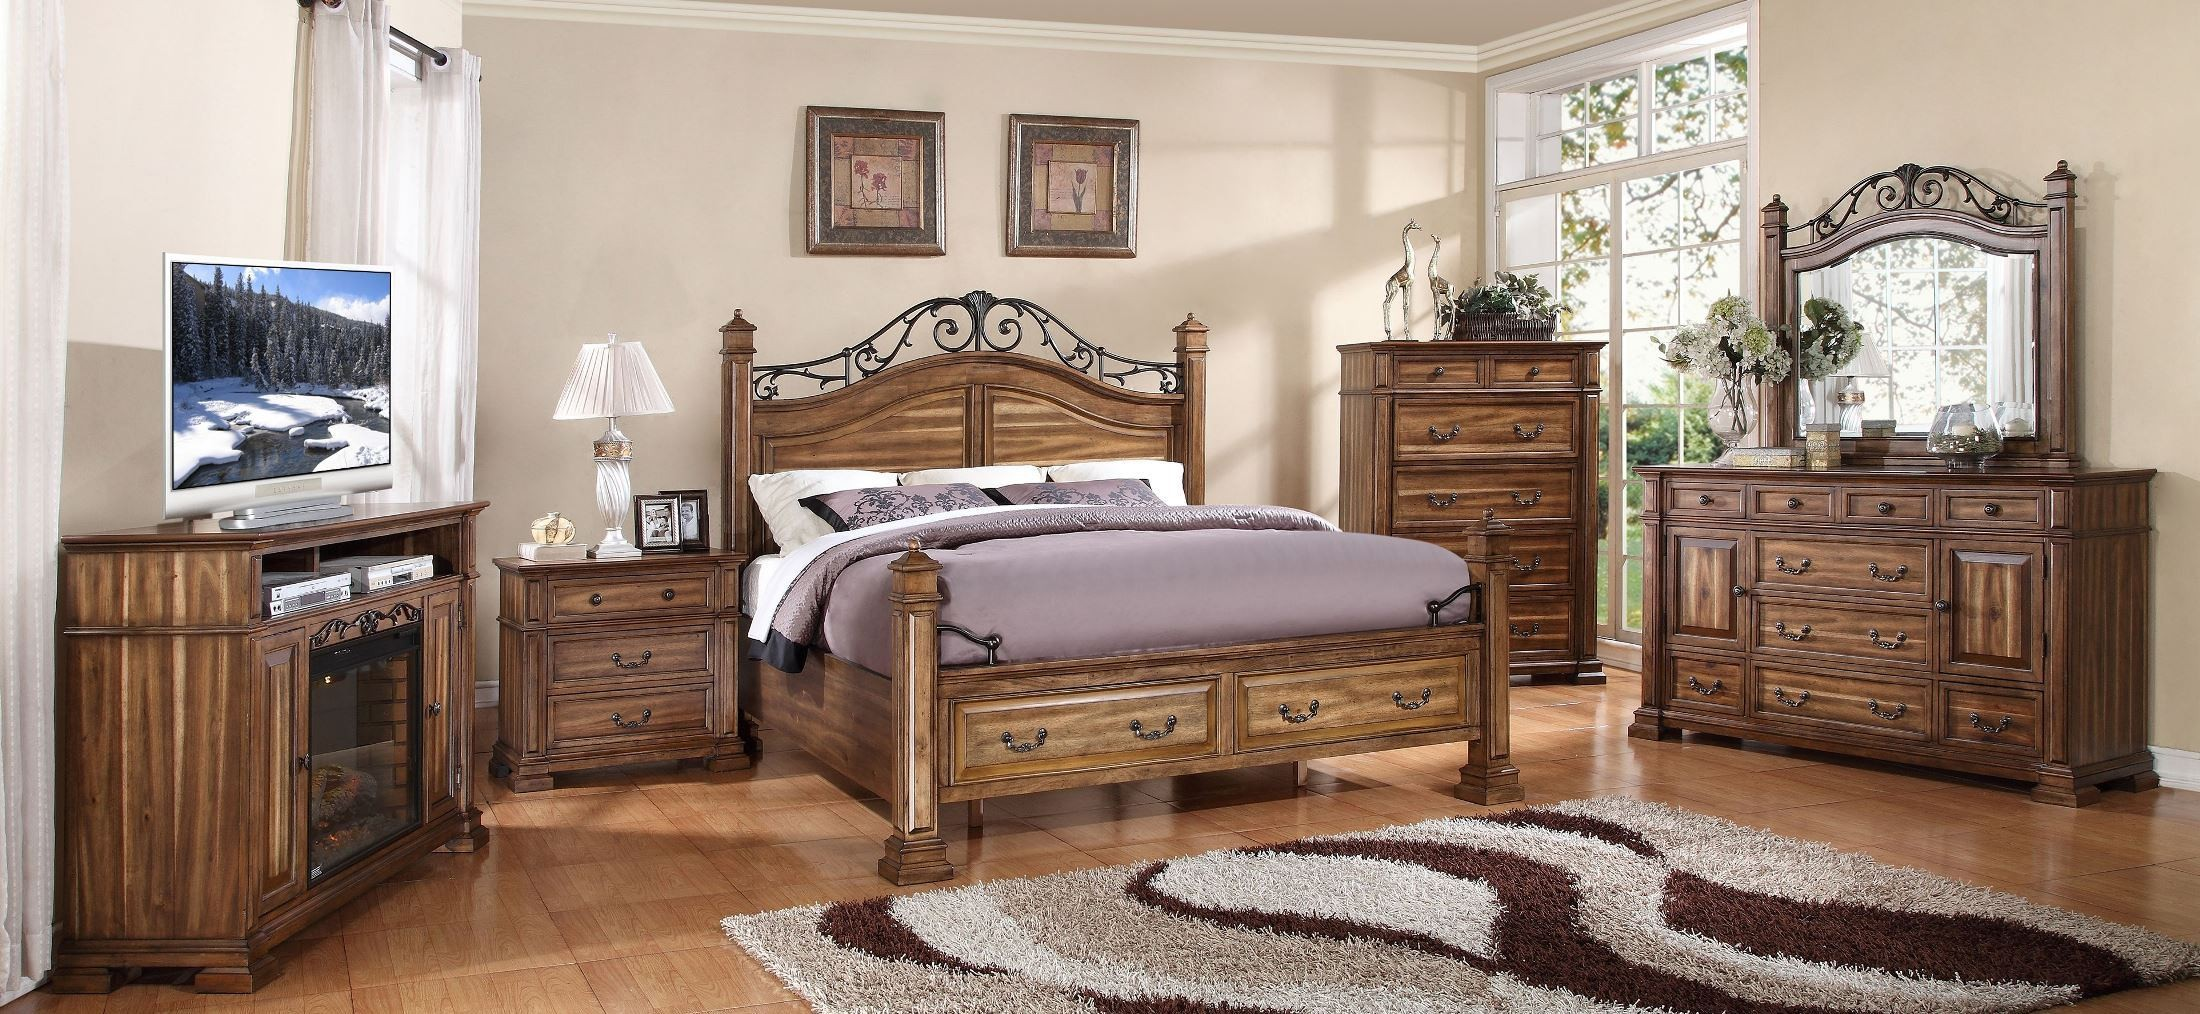 Barclay Rustic Acacia Cal King Poster Storage Bed From Legends Zbcl 7004 7009 7012 Coleman